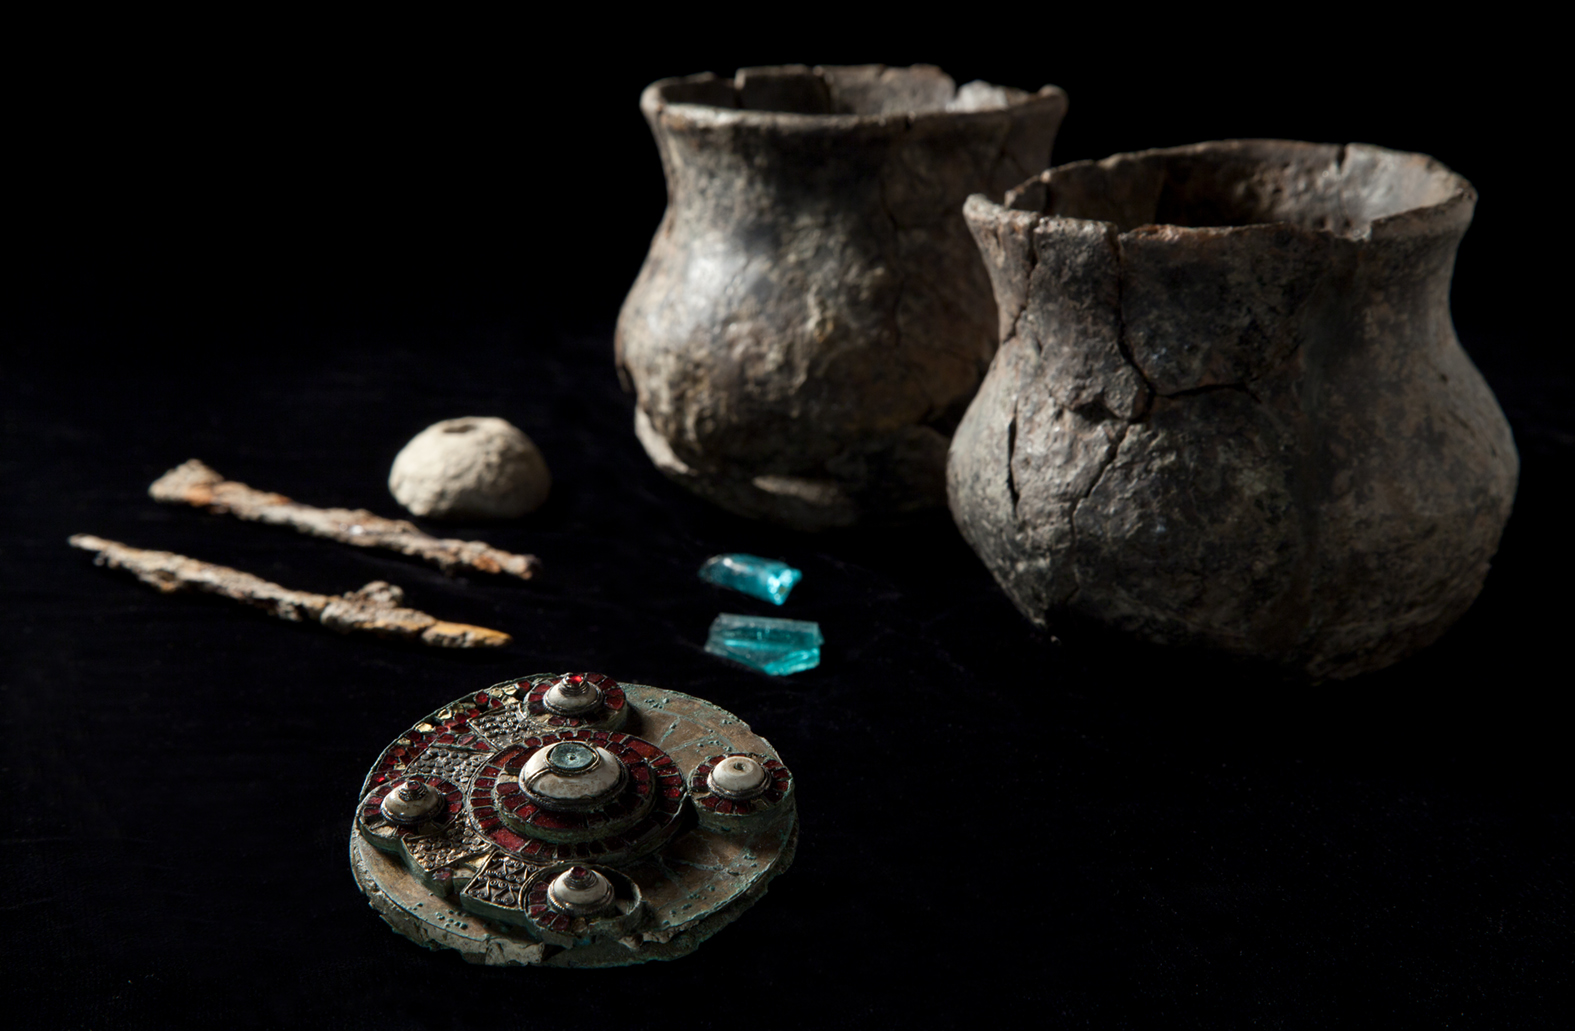 A photo of the burial assemblage discovered at West Hanney, including two fragments of glass (apparently from the same vessel), a chalk and spindle whorl, iron knives,and, two small ceramic vessels (most likely cups).